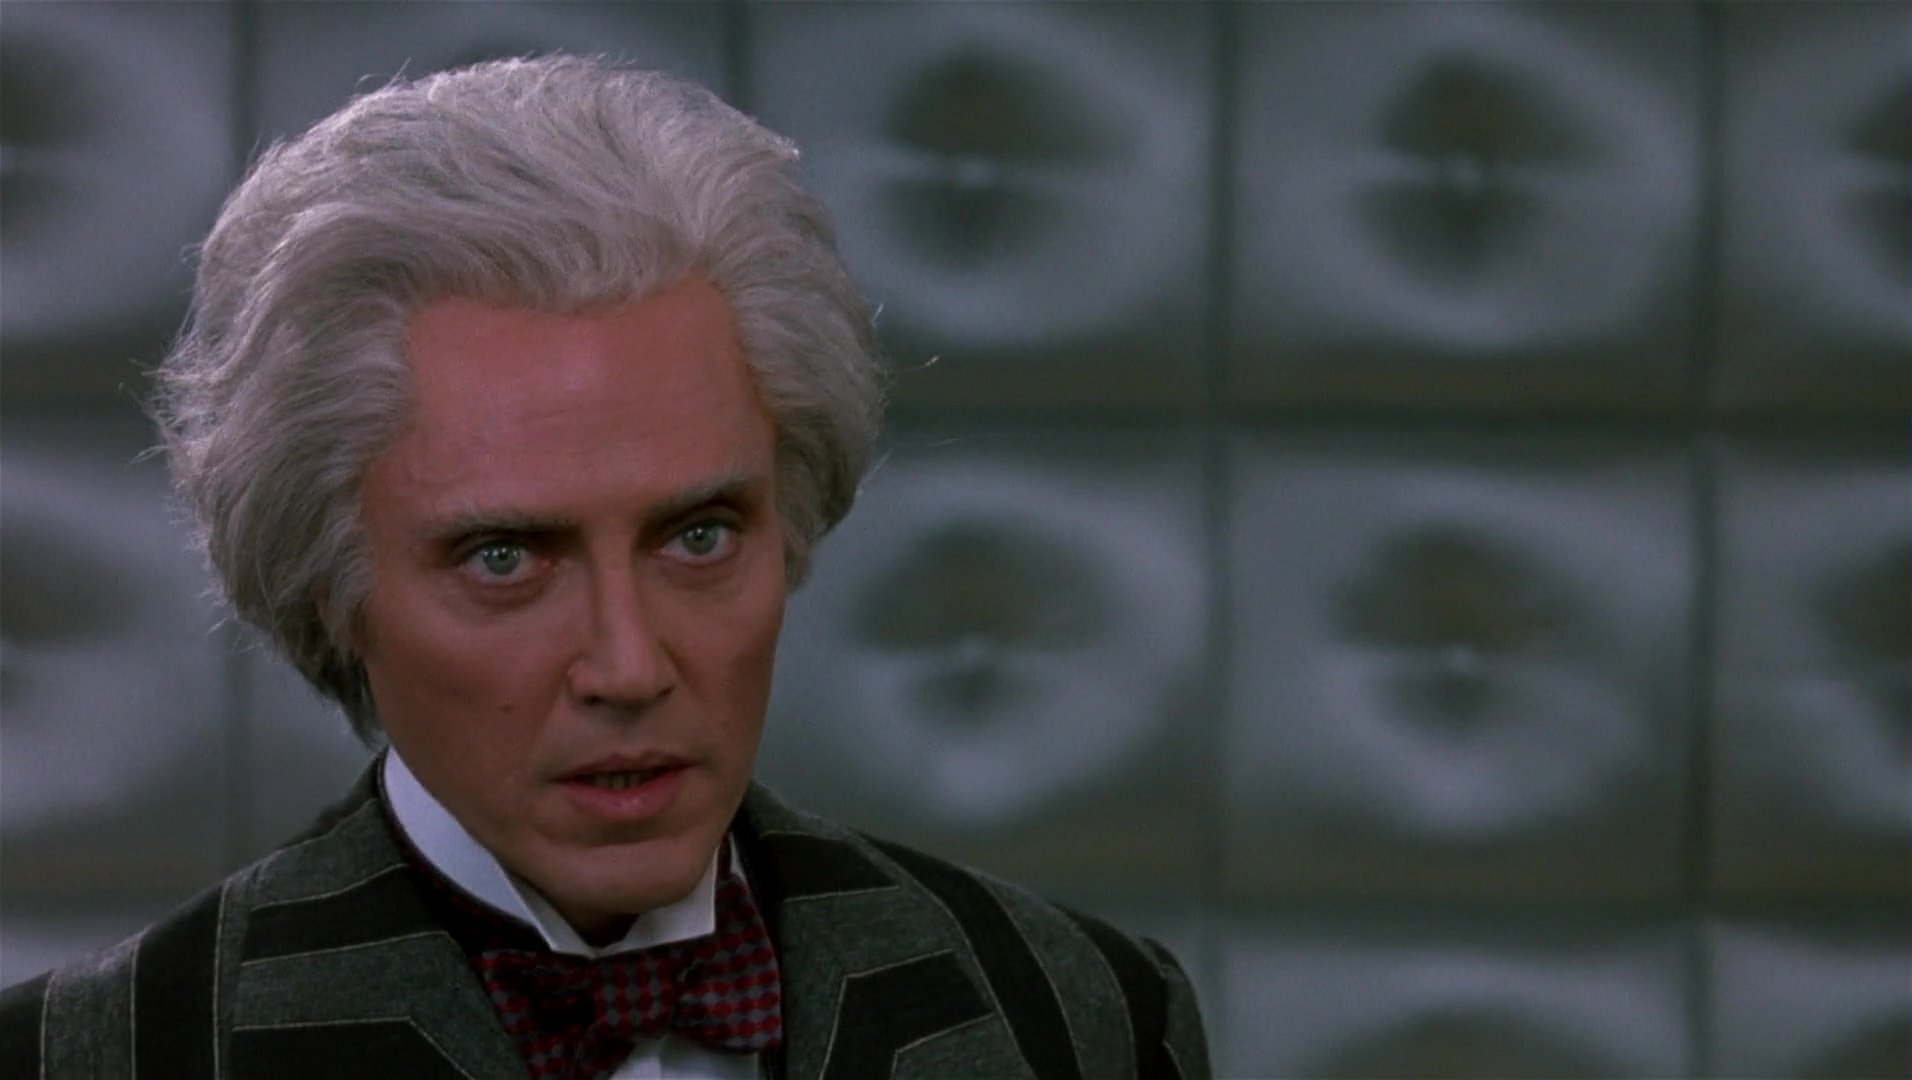 Star Wars Christopher Walken looks back on his failed audition